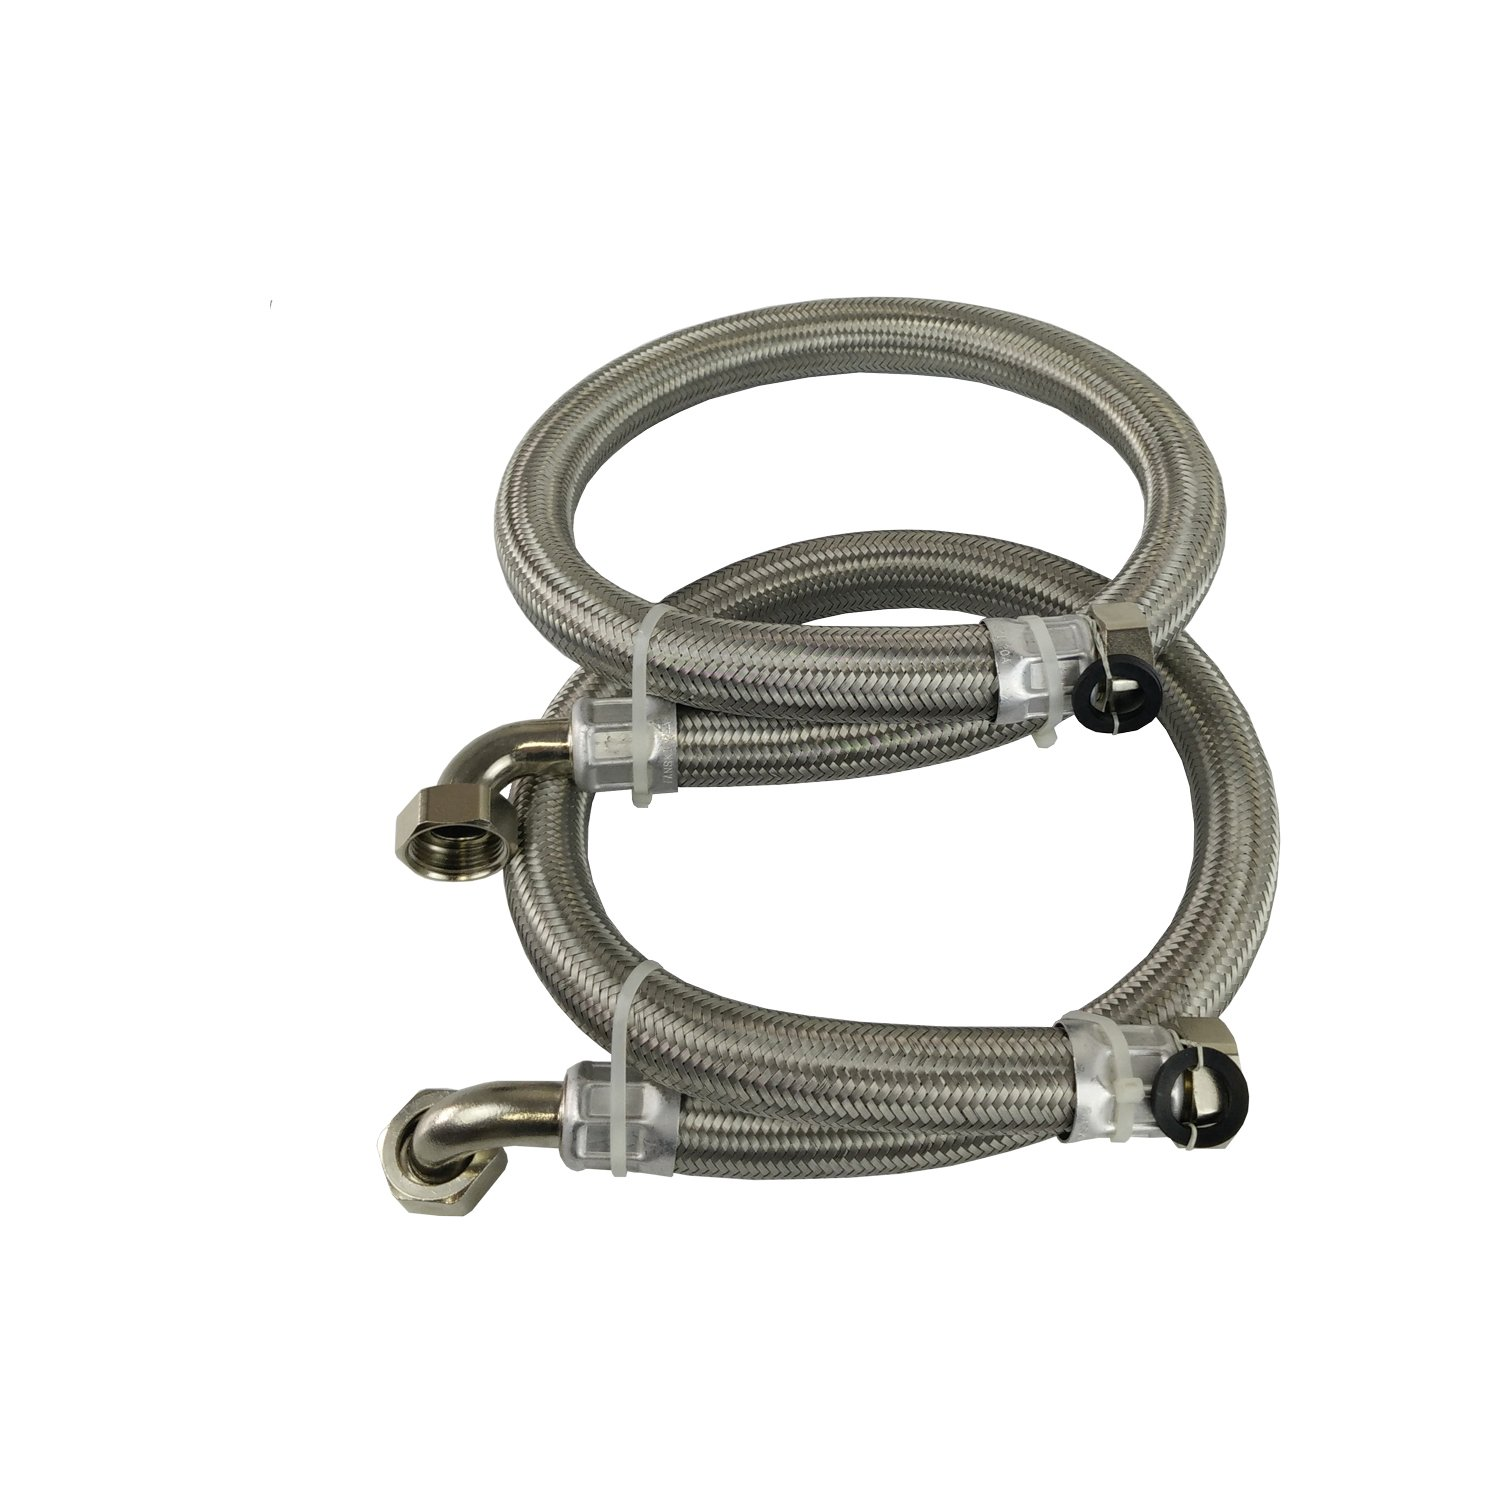 Stainless Steel Braided Hoses For Water Softeners /& Water Filtration 22mm